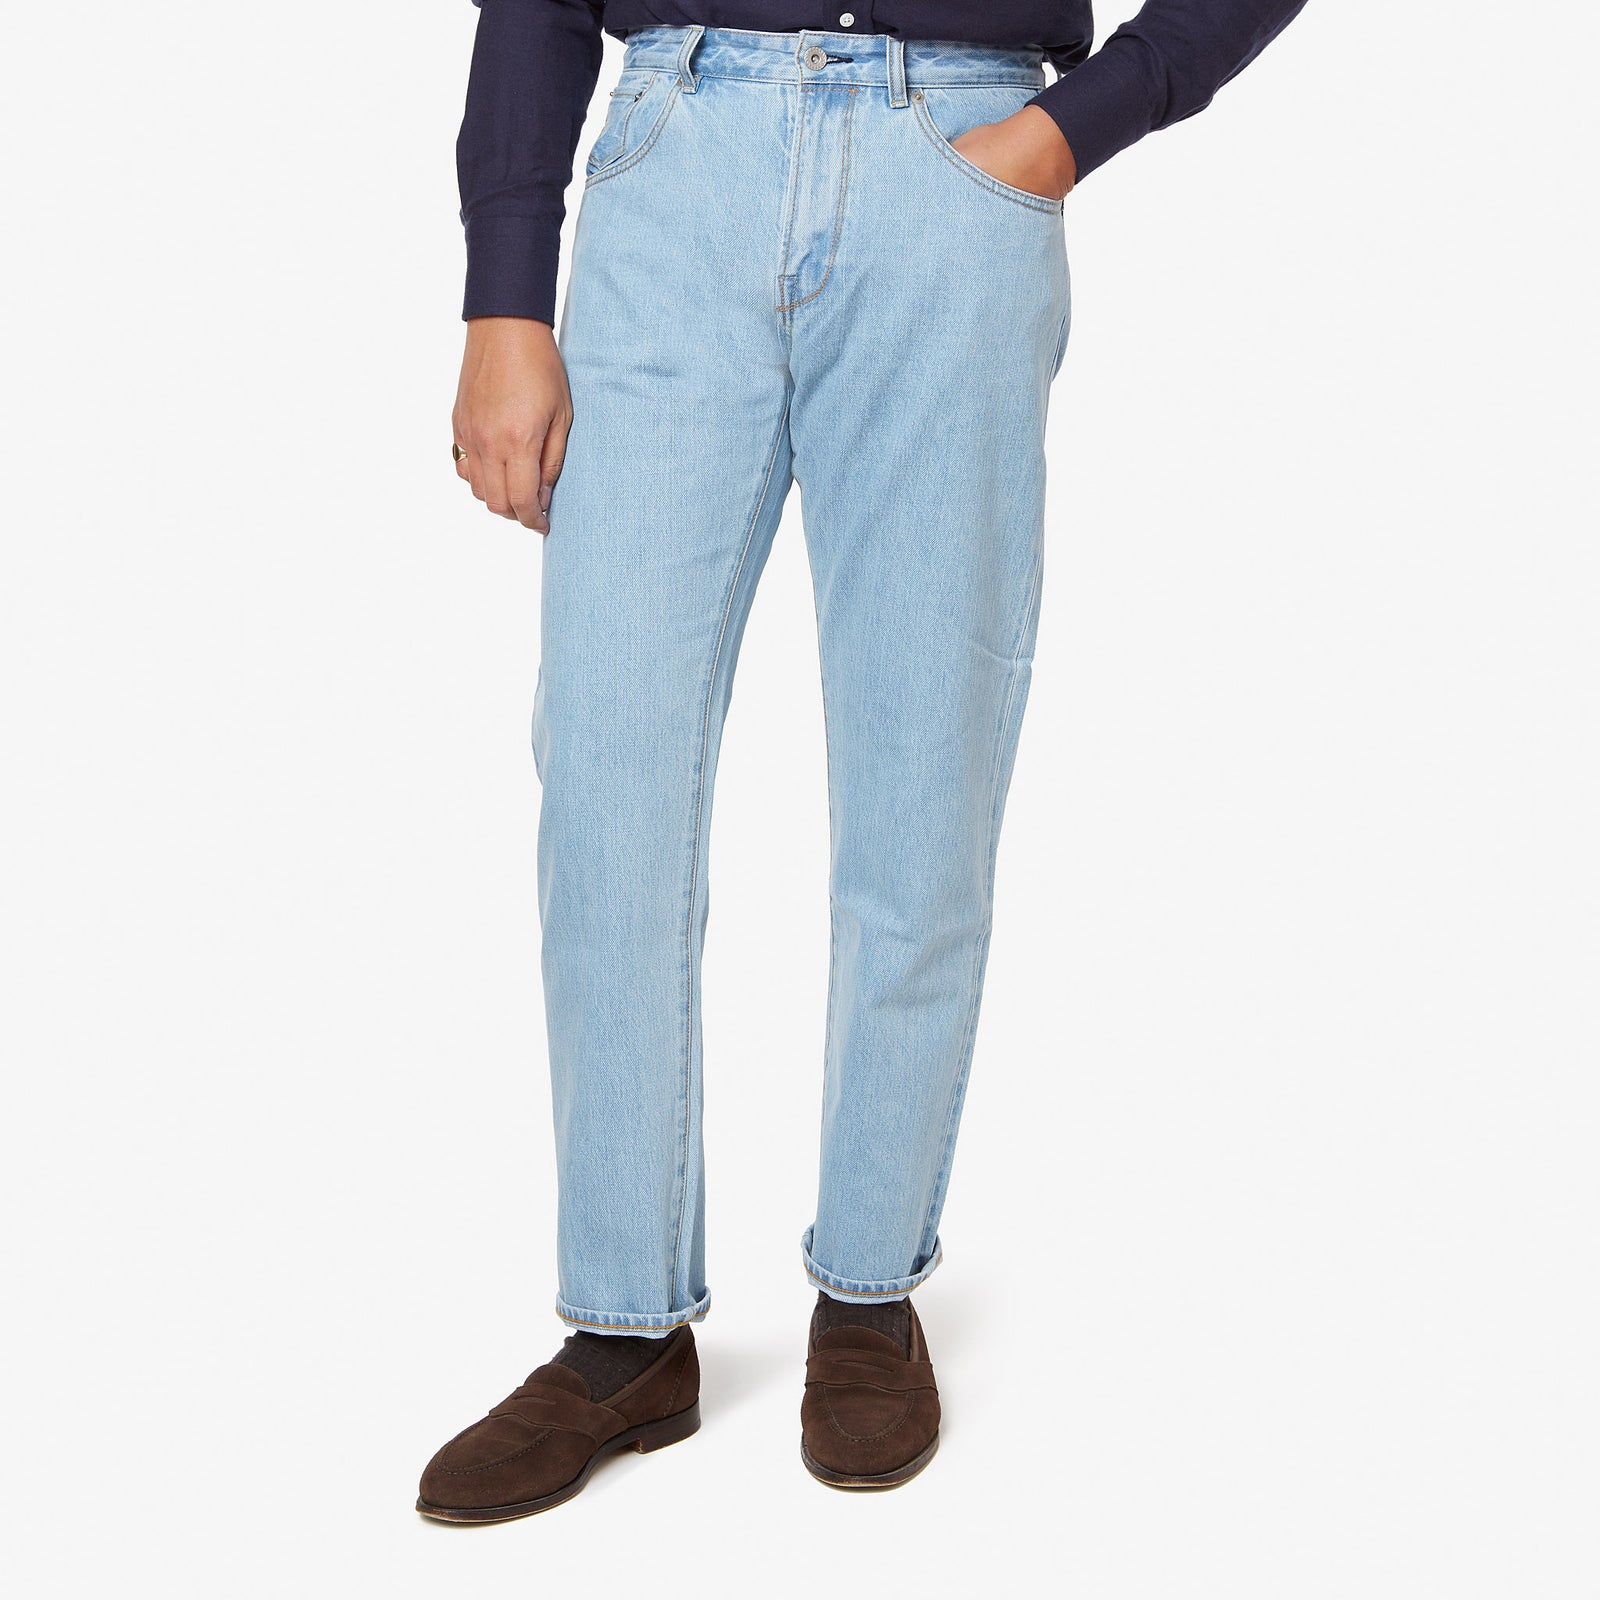 "AIC Denim Light Wash 32"" Inseam"